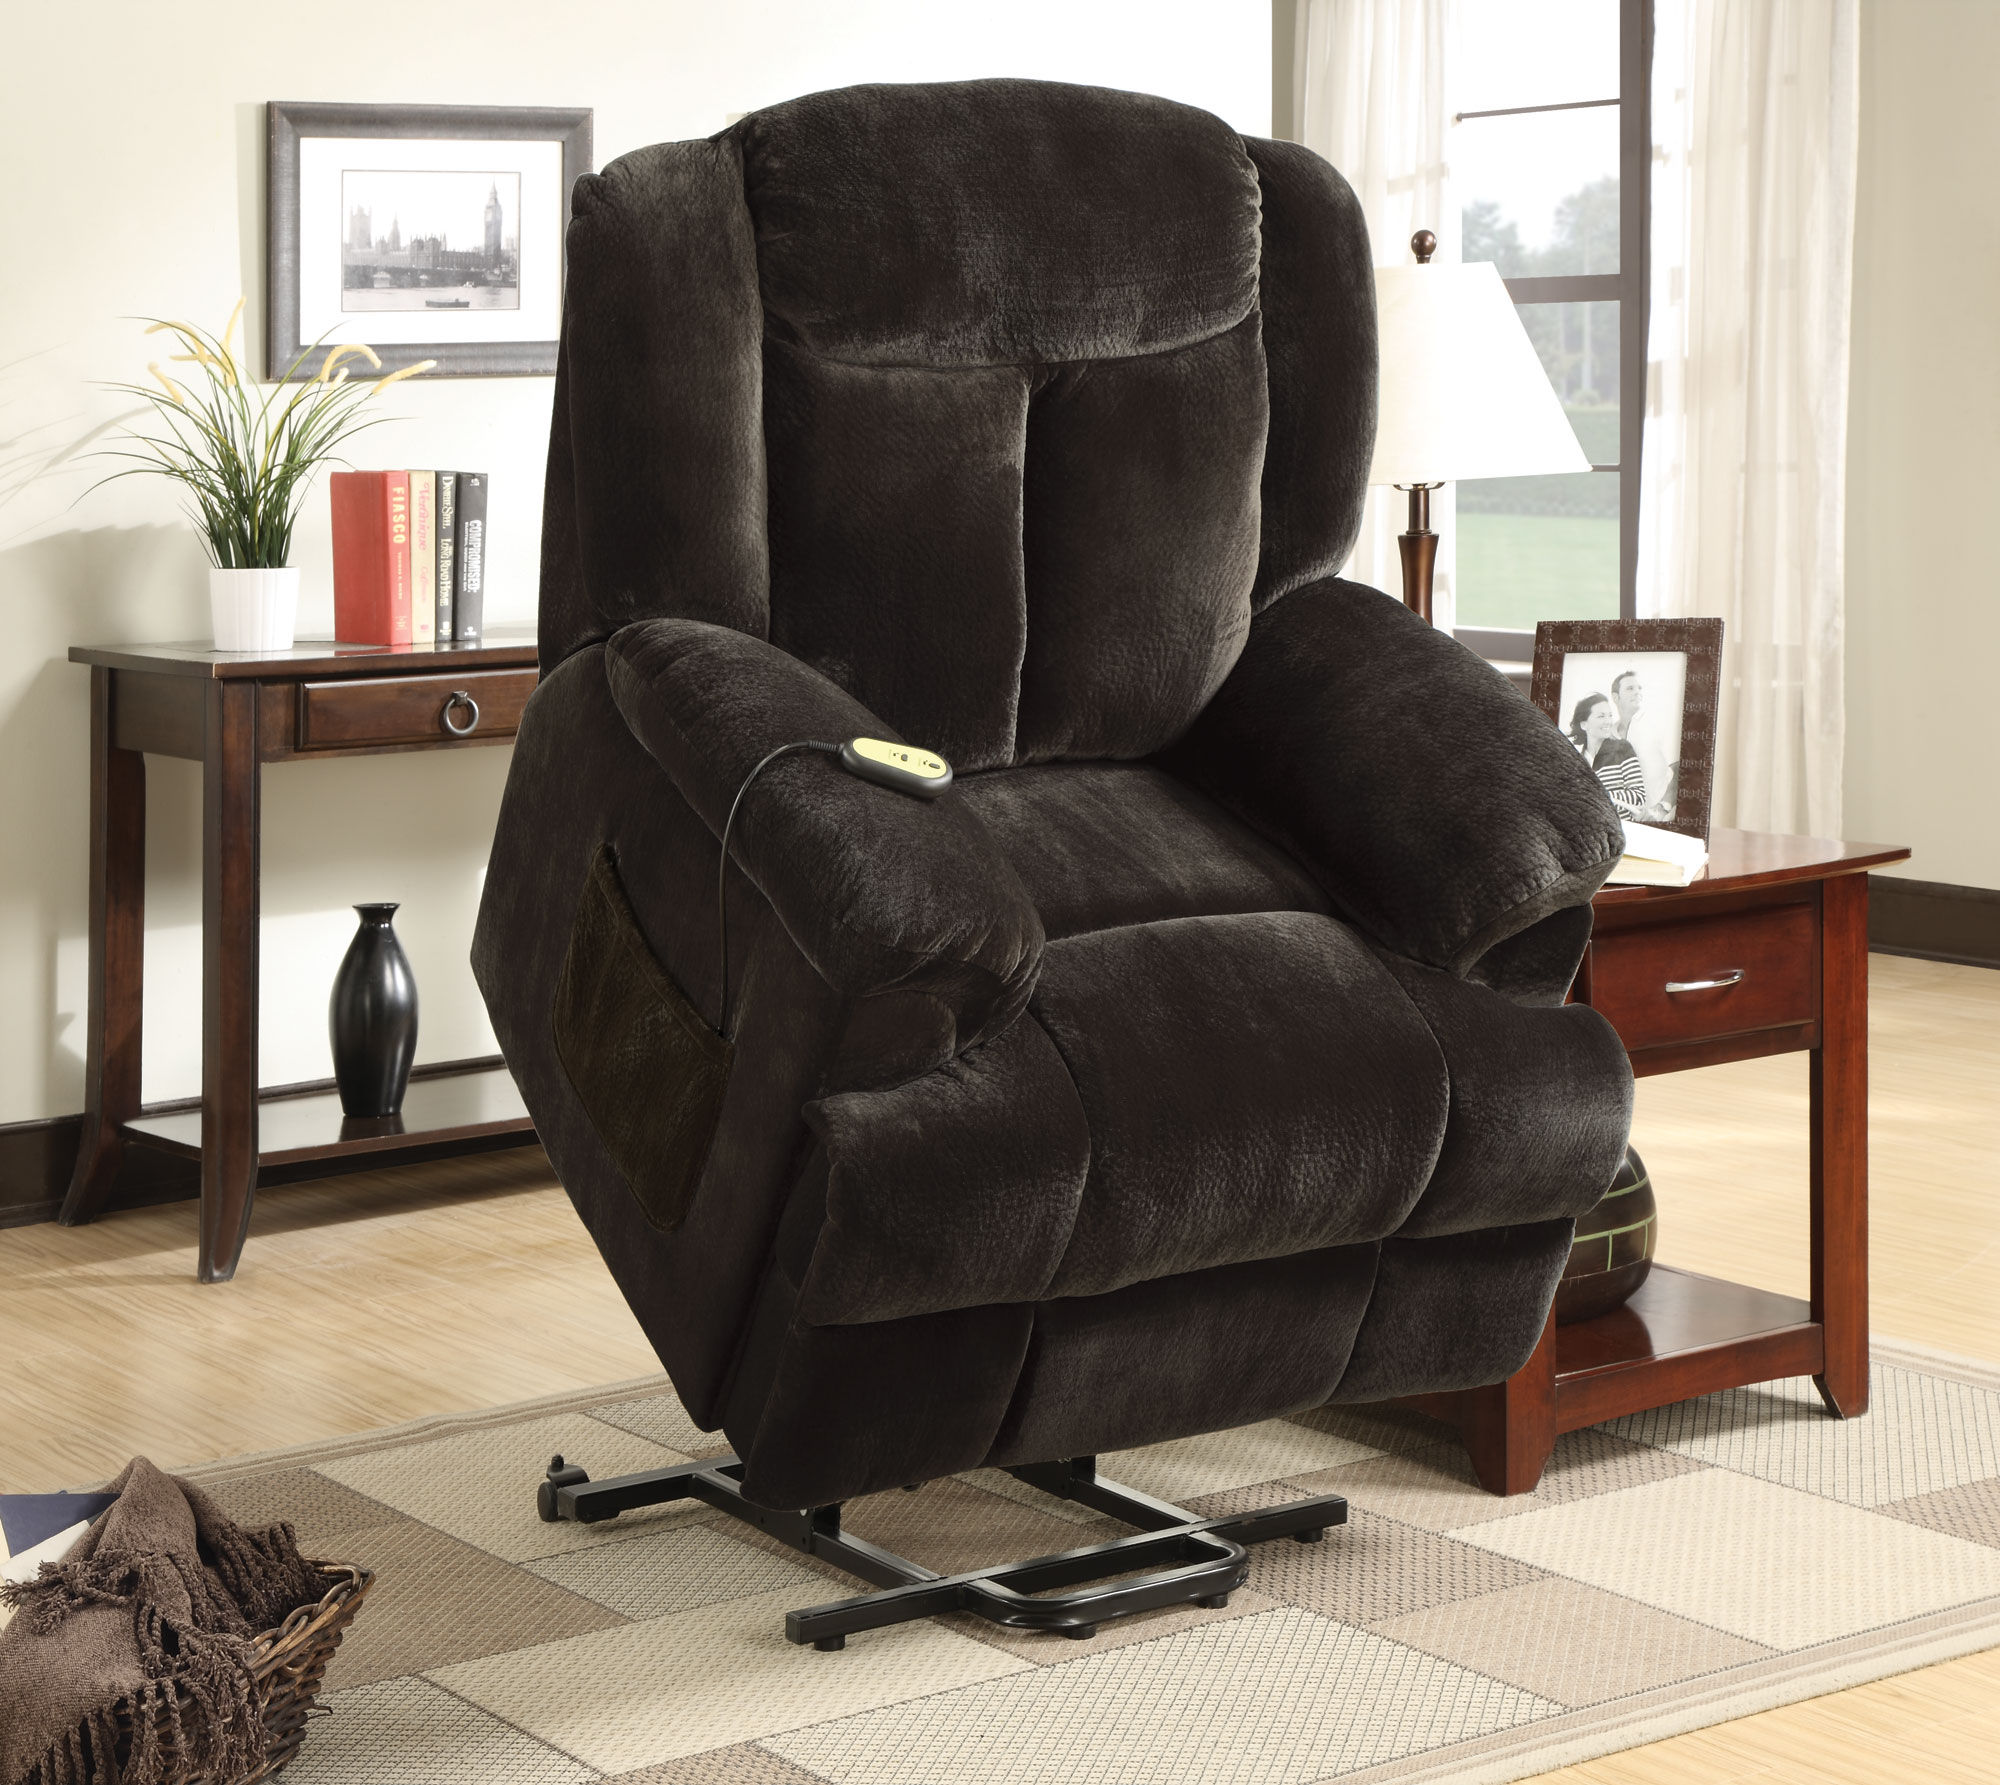 Furniture Re mended Power Lift Recliners For Your Healthcare